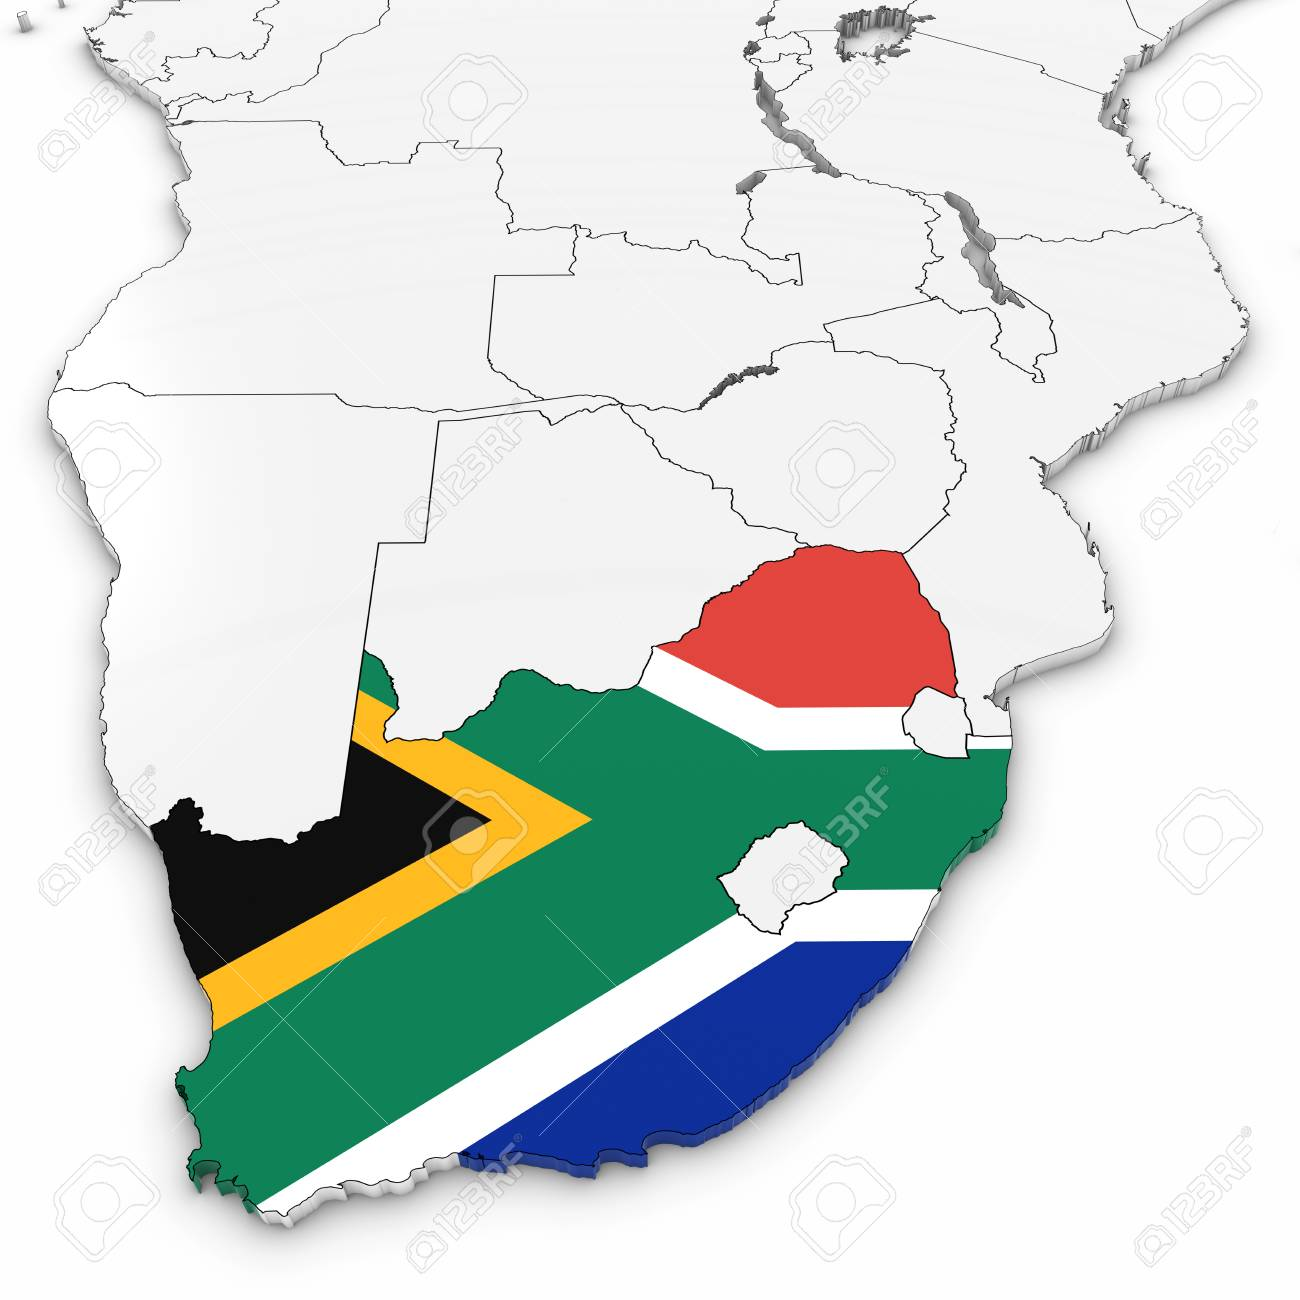 South Africa Flag In Africa Map.Stock Illustration